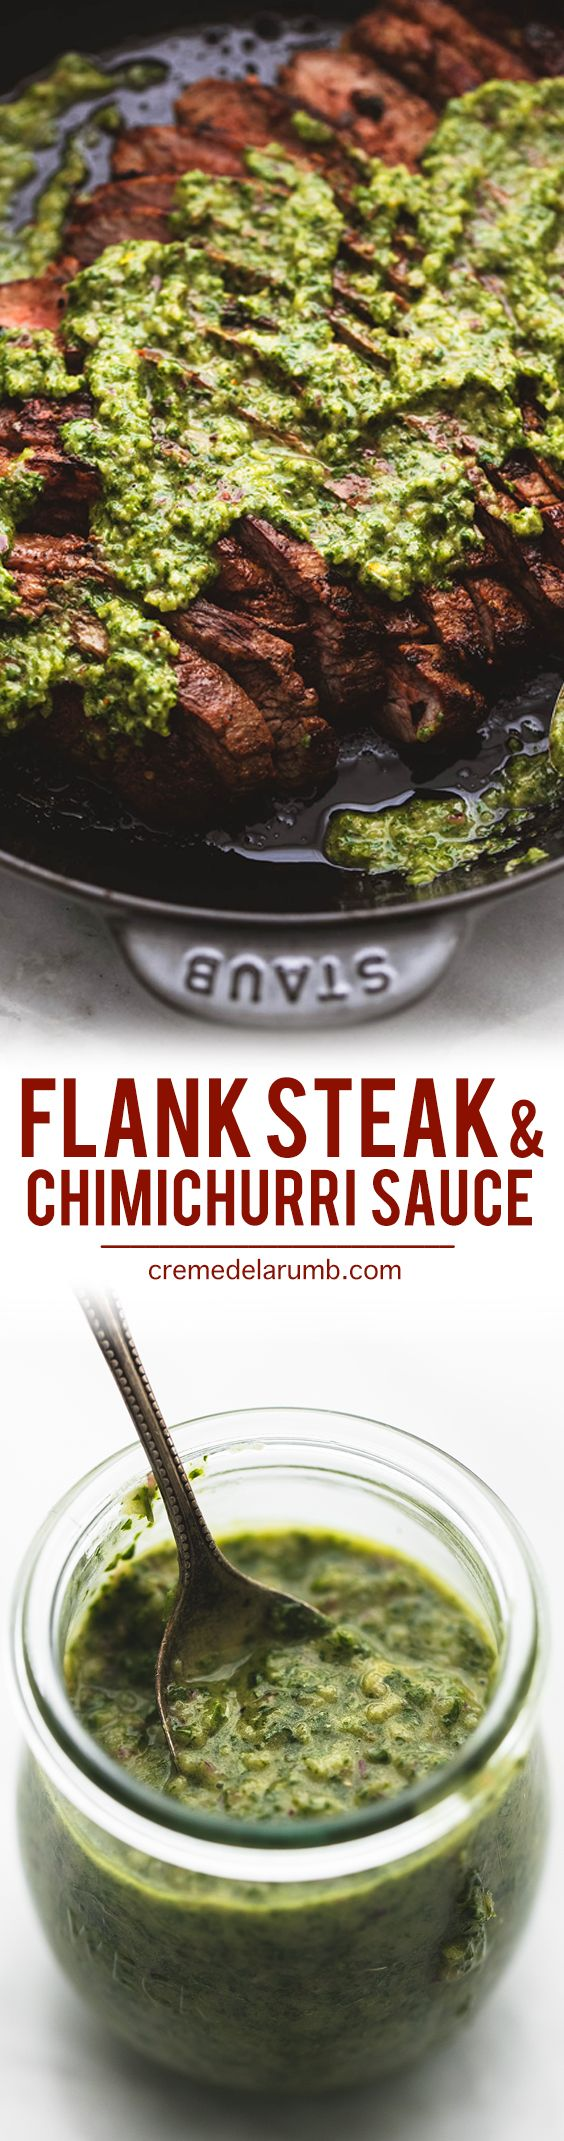 Easy Argentinean marinated flank steak with chimichurri sauce is bursting with bold savory flavors and just a hint of heat. This quick-seared steak is so tender and juicy it will melt in your mouth.   lecremedelacrumb.com